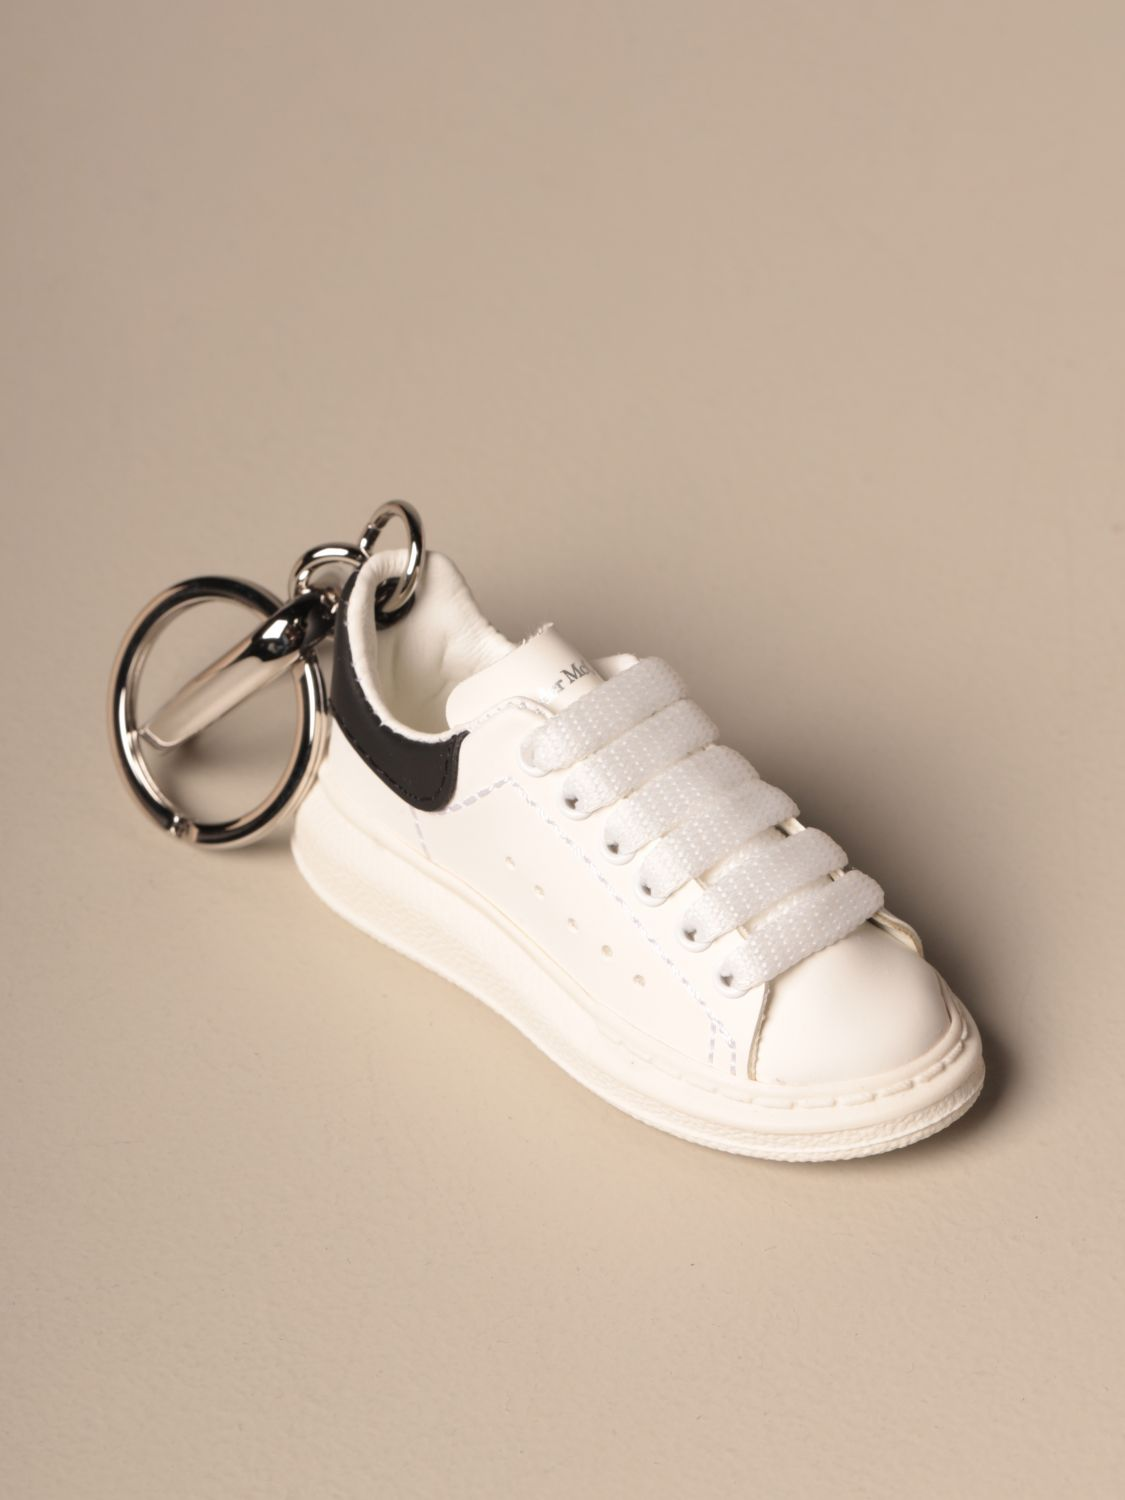 Keyring Mcq Mcqueen: Mcq McQueen keychain in the shape of a sneakers black 1